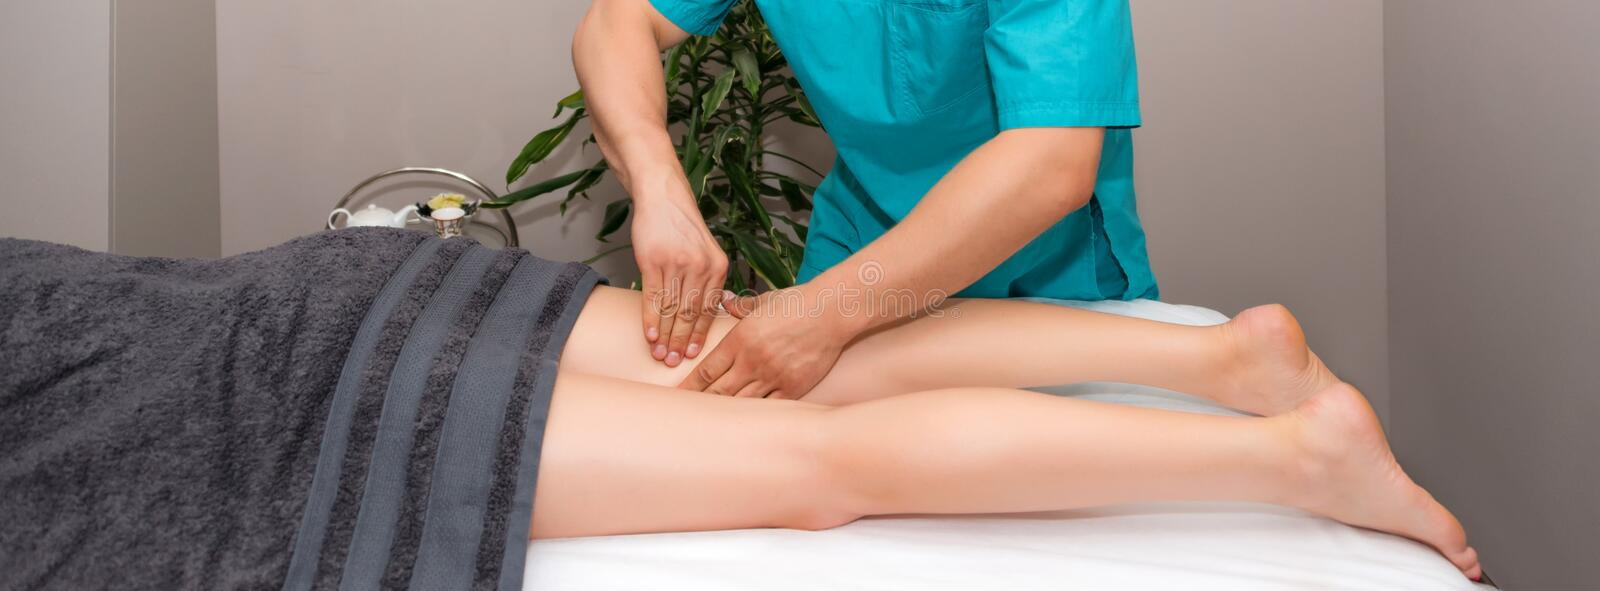 Professional therapist giving relaxing leg massage treatment to a woman in spa. Relaxing spa procedures, whole body. Massage. Pleasure, rest, body care, beauty stock image